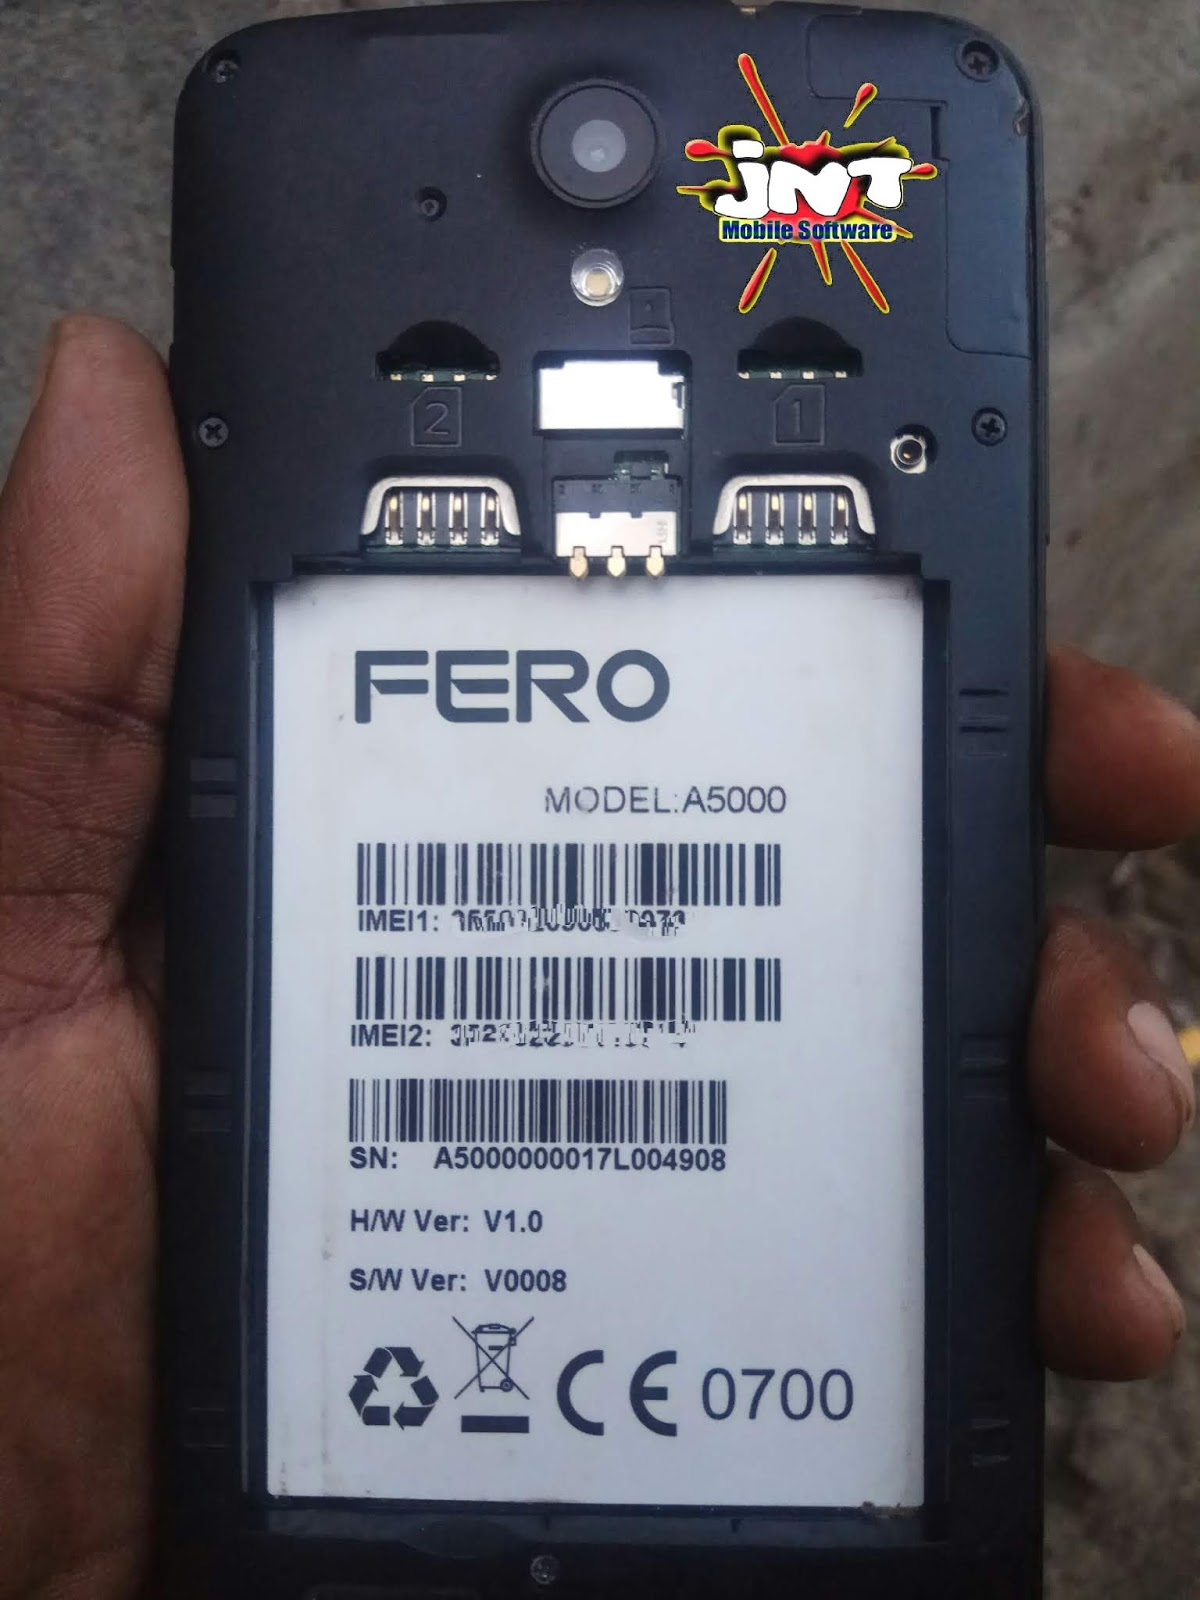 FERO A5000 FIRMWARE/ FLASH FILE DOWNLOAD, TESTED AND 100